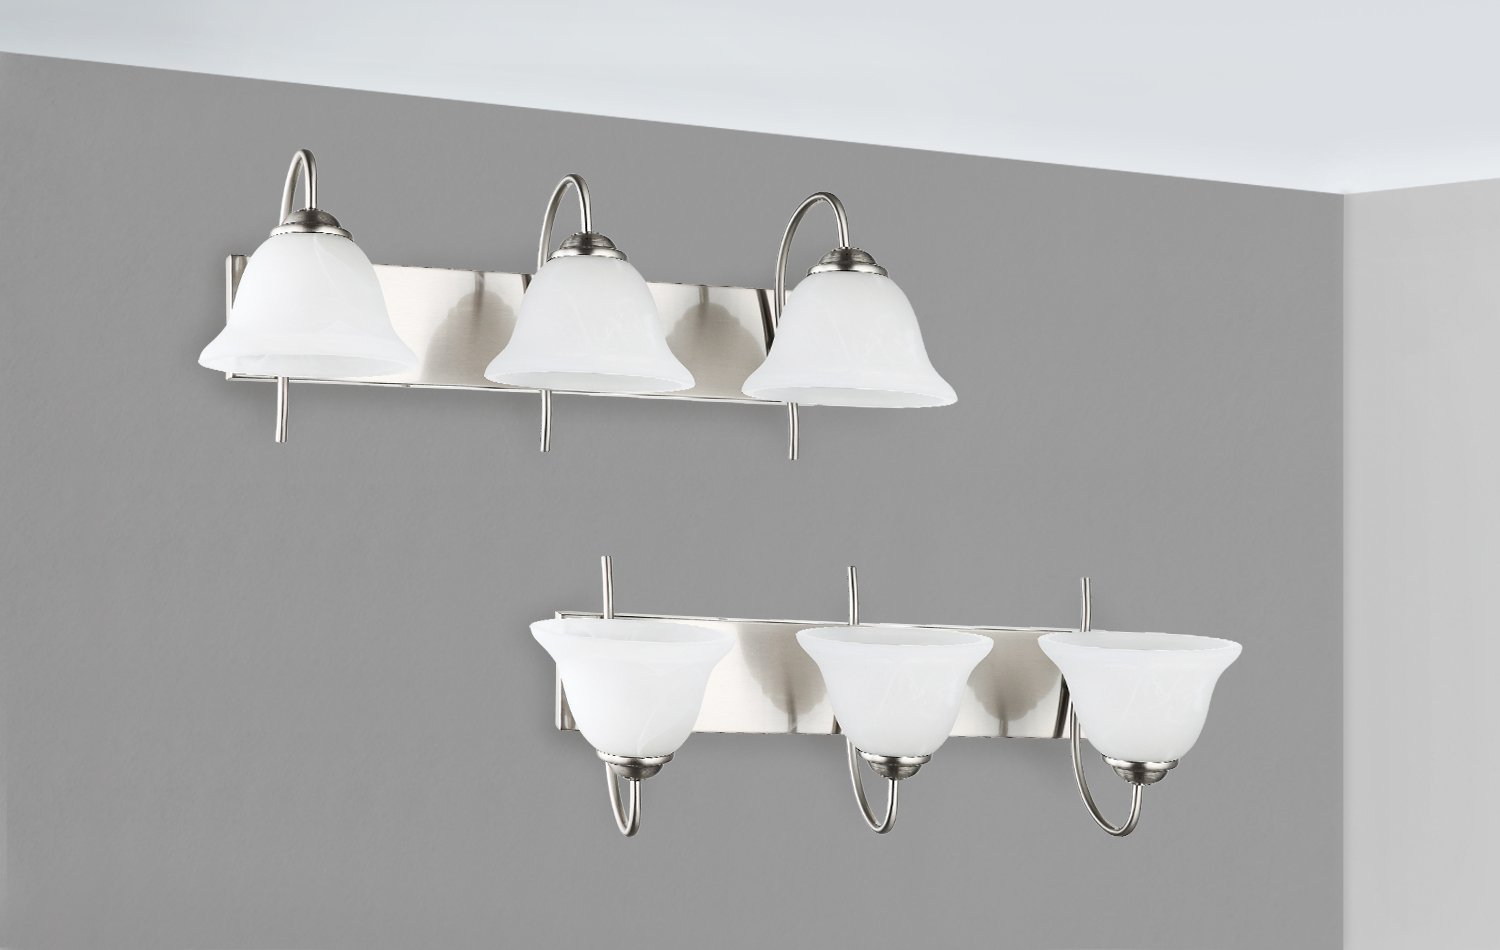 3-Light Bathroom VANITY and Kitchen Wall Sconce Fixture, Satin Nickel Finish with Alabaster Glass Bell Shades, E26 Medium Base For Three Bulbs, UL Listed by OSTWIN (Image #5)